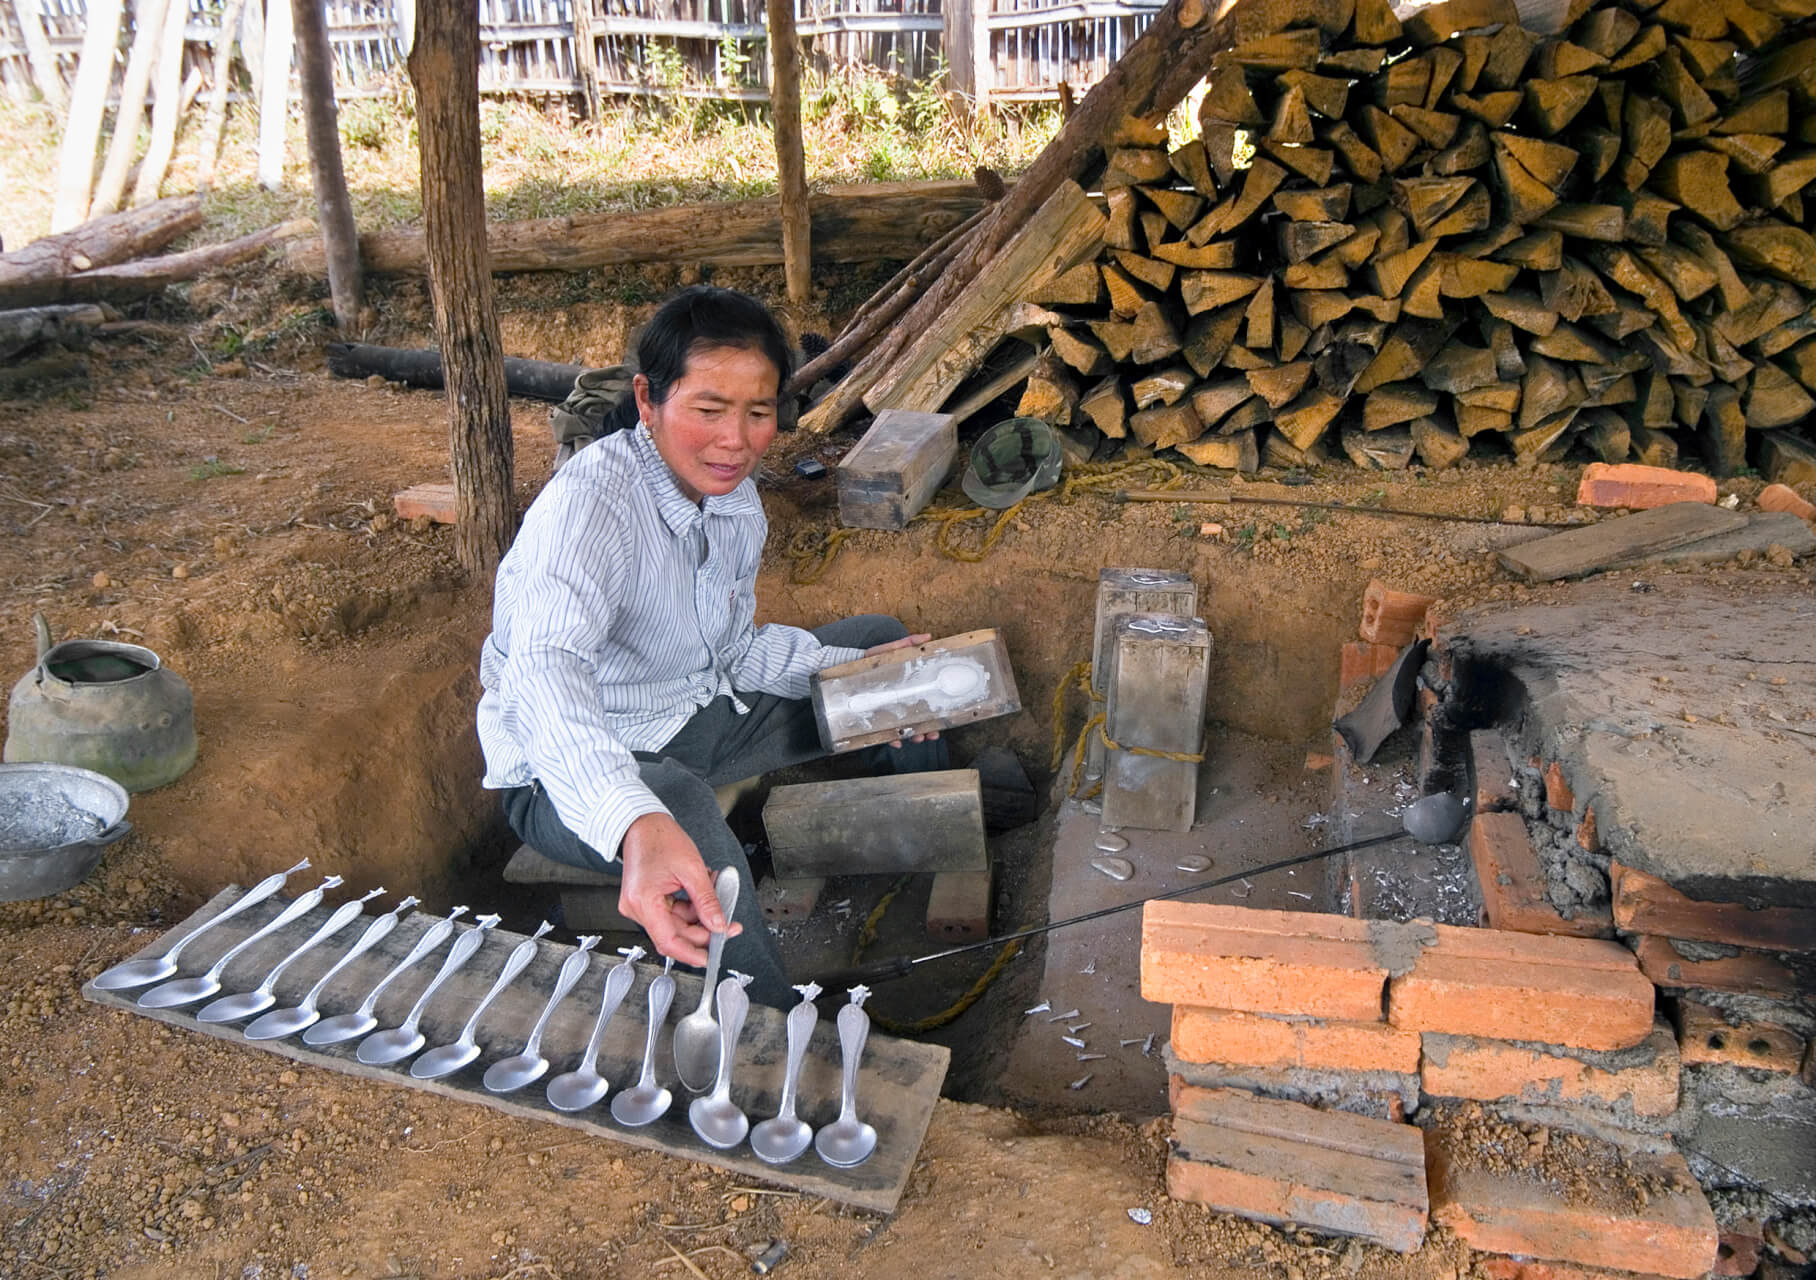 """Make Spoons/Bracelets, not War,"" in Laos, by Chinch Gryniewicz"